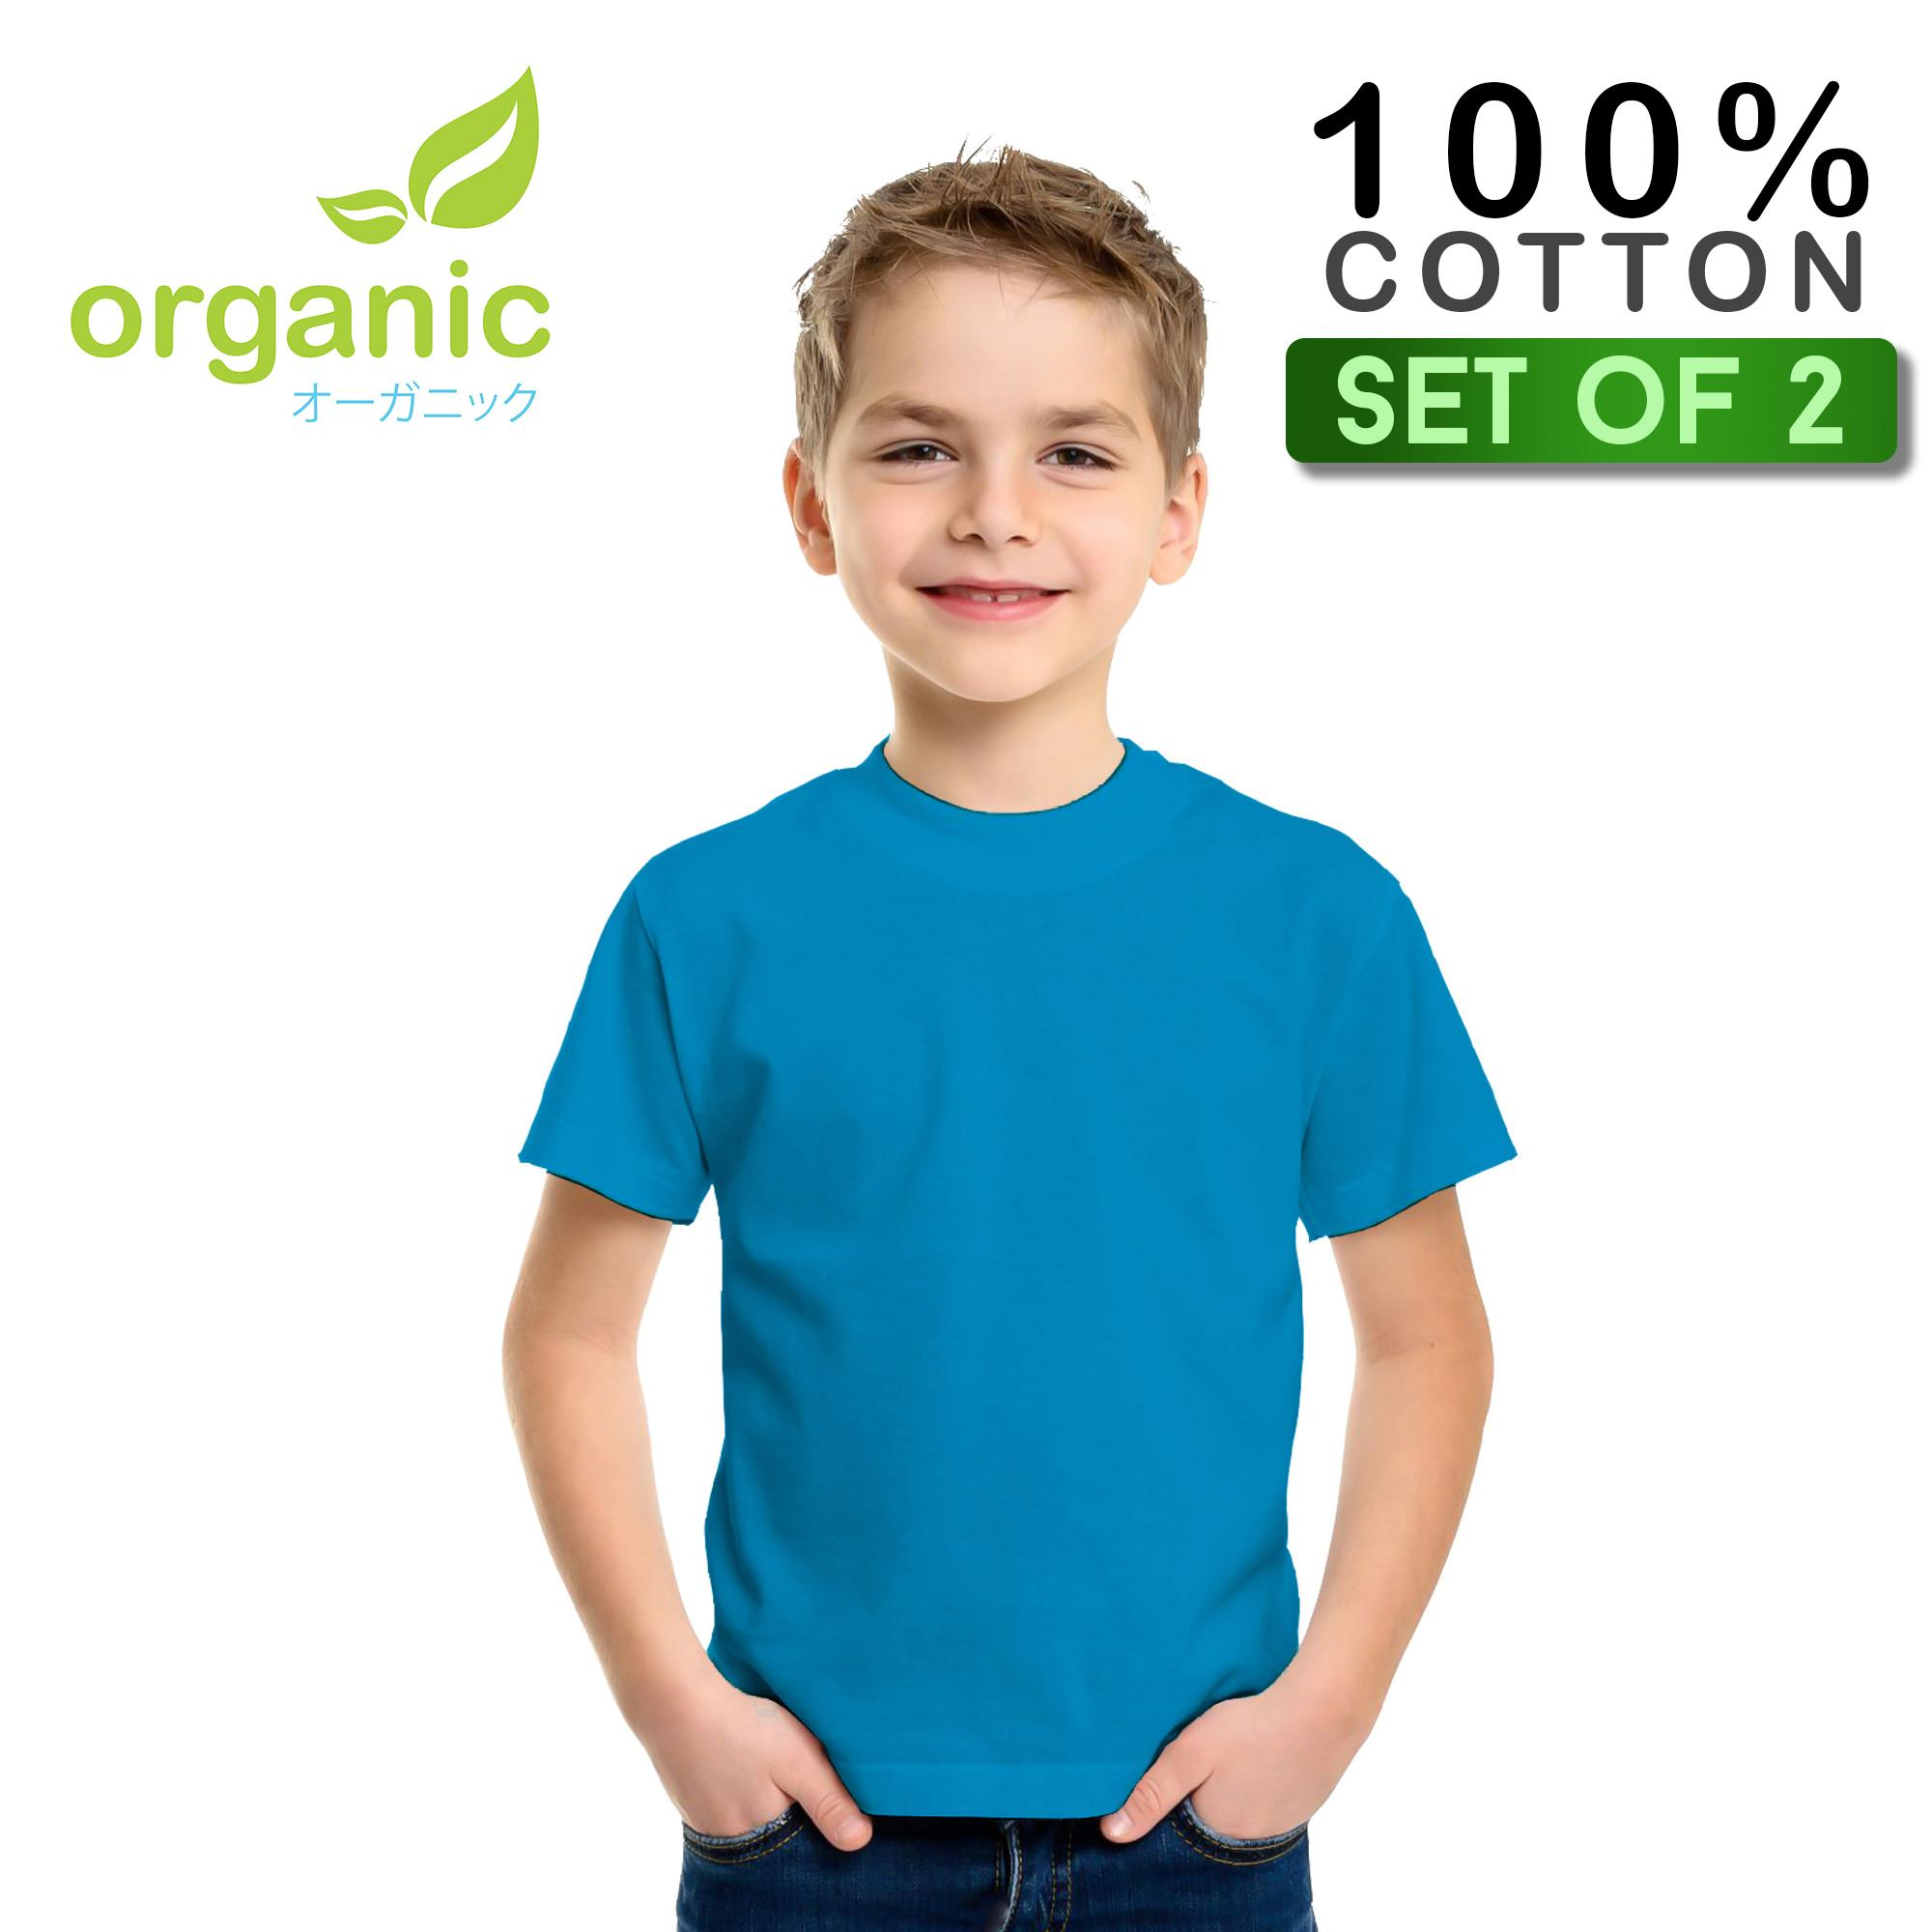 f45f32e38 Organic Kids Round Neck (Set of 2) Tees t shirt tshirt shirts tshirts tops